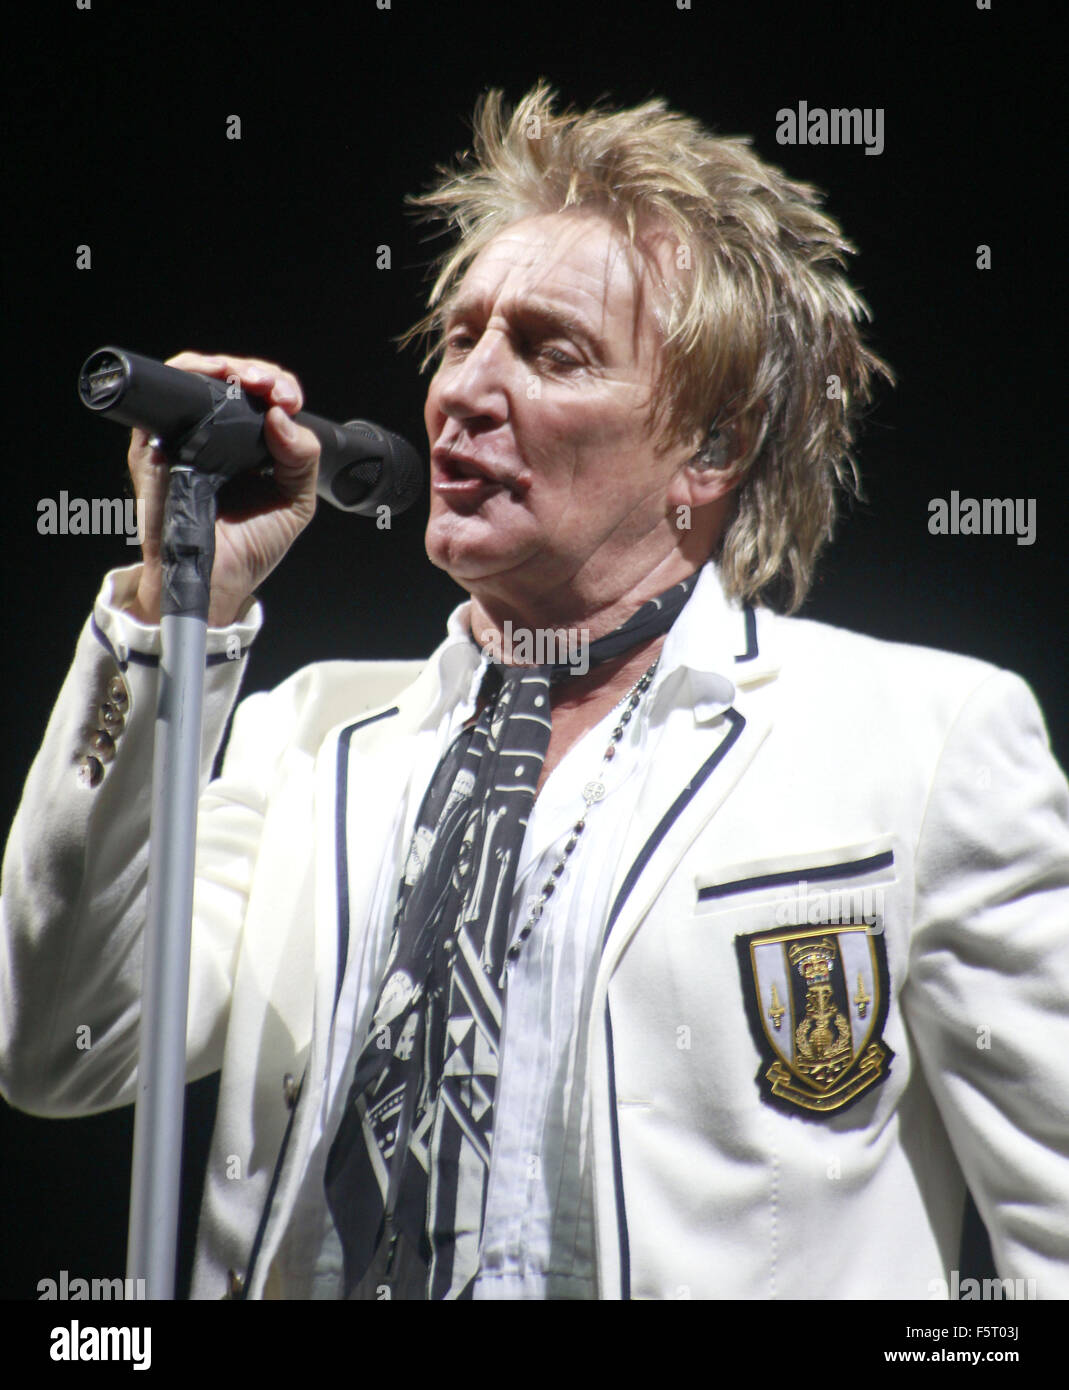 The Faces reunion concert held at Hurtwood Park Polo Club  Featuring: Rod Stewart Where: Surrey, United Kingdom - Stock Image